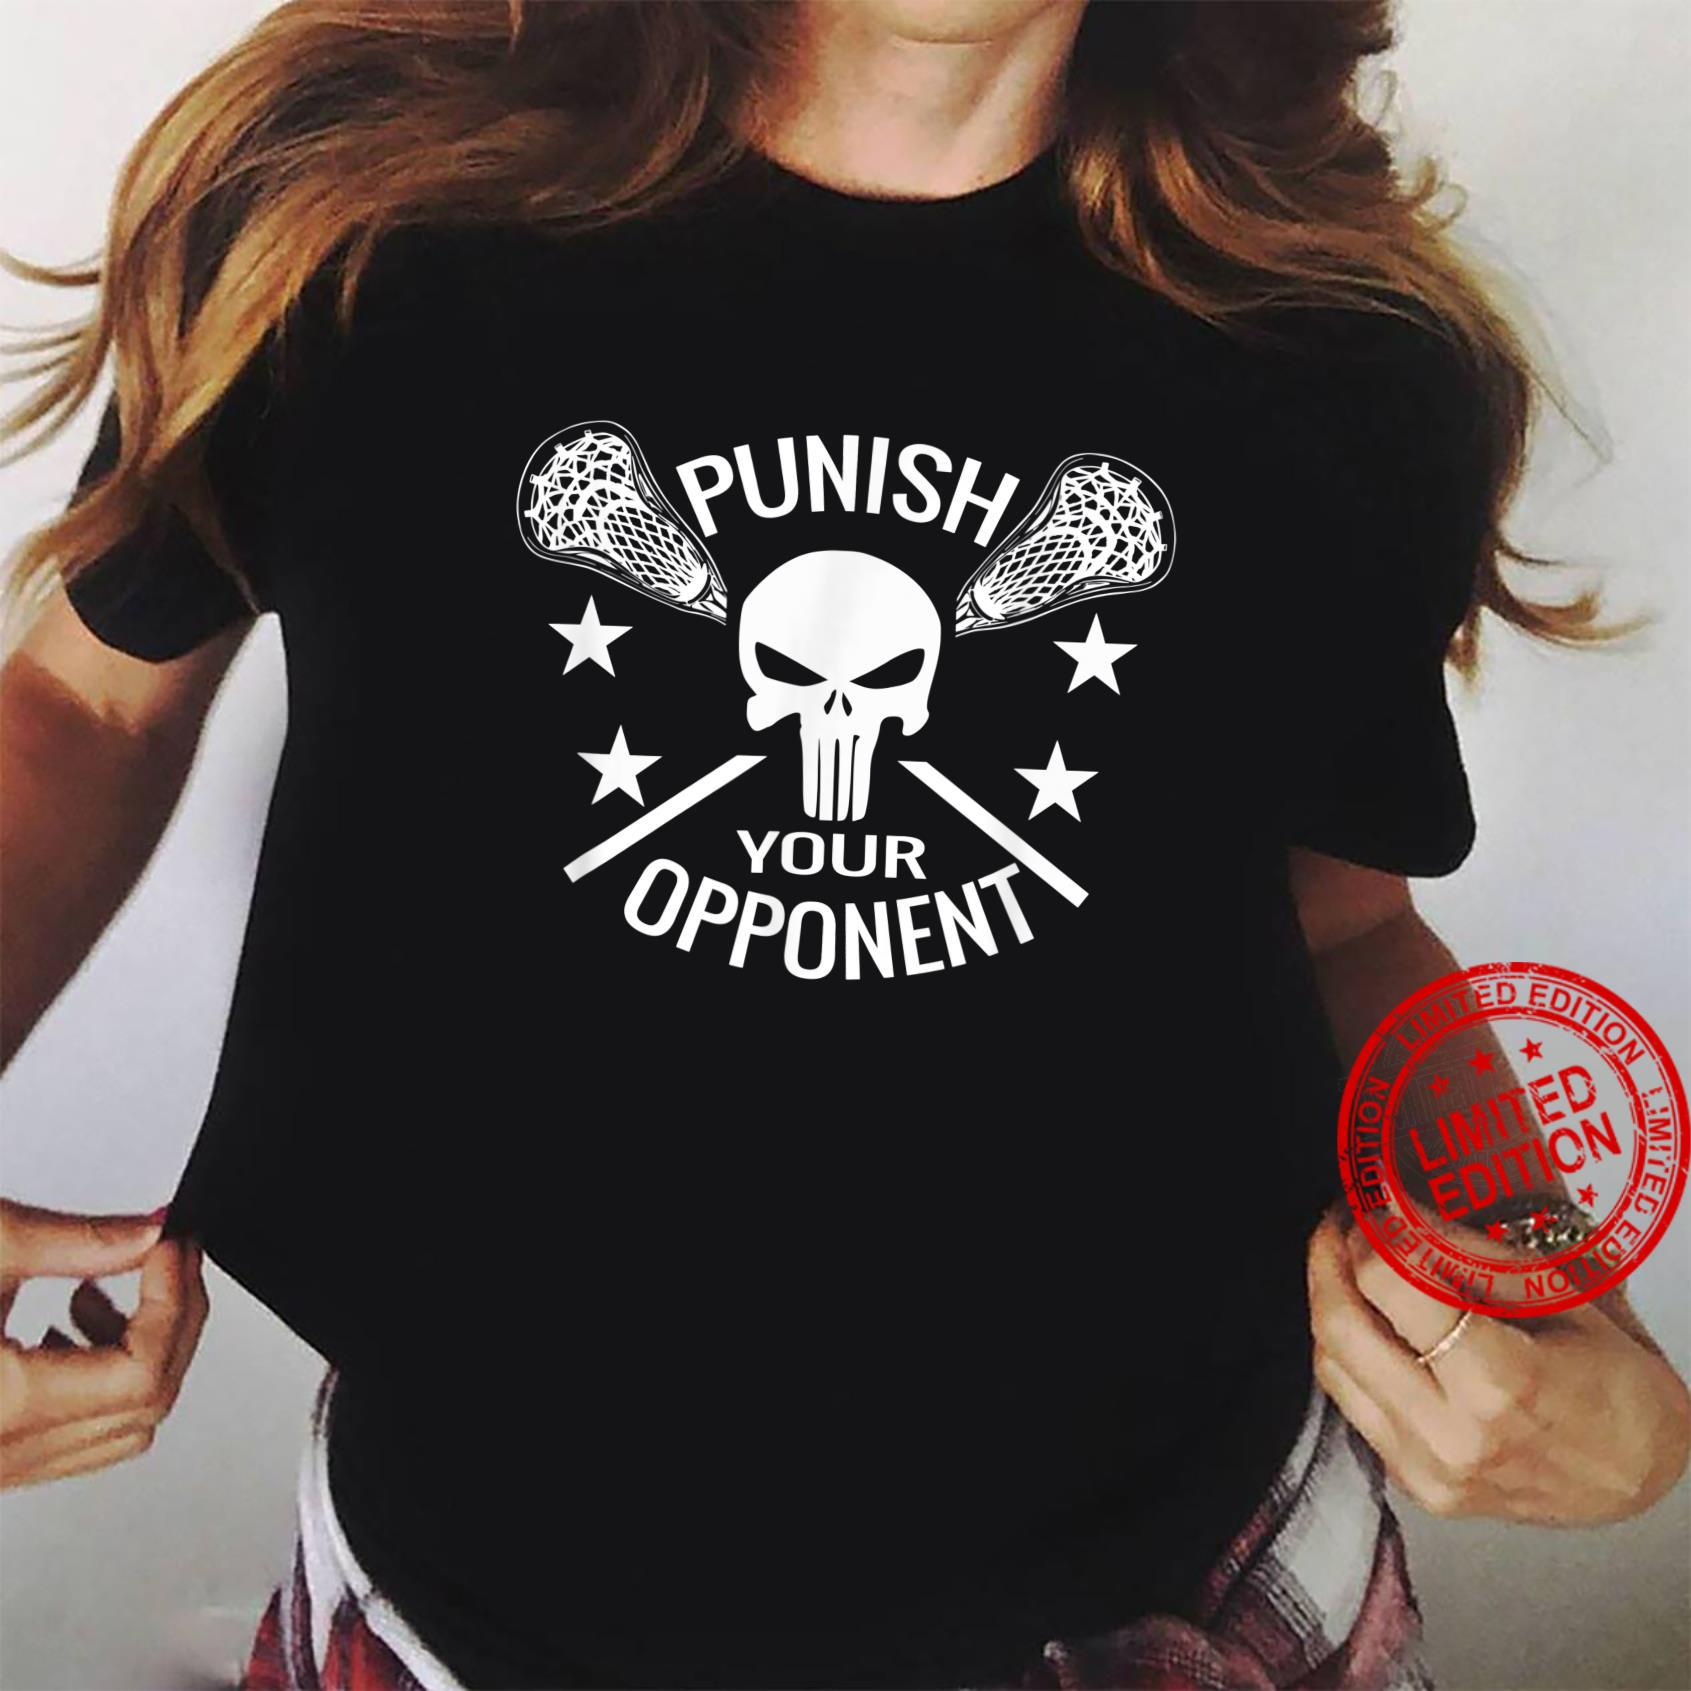 Boys Lacrosse Skull and Sticks Punish Your Opponent Shirt ladies tee